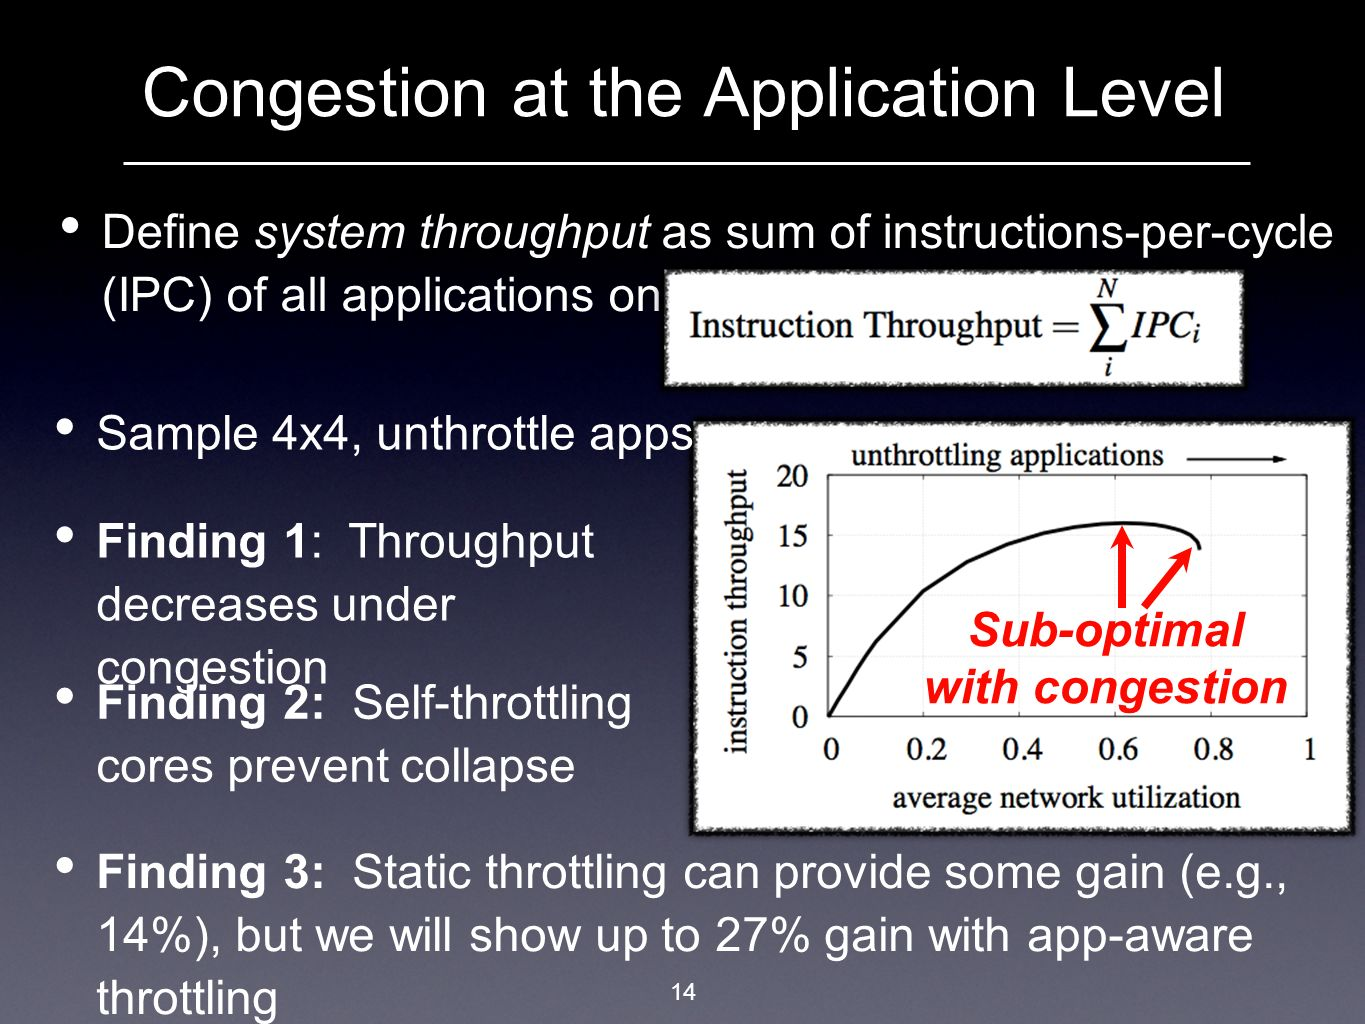 Congestion at the Application Level